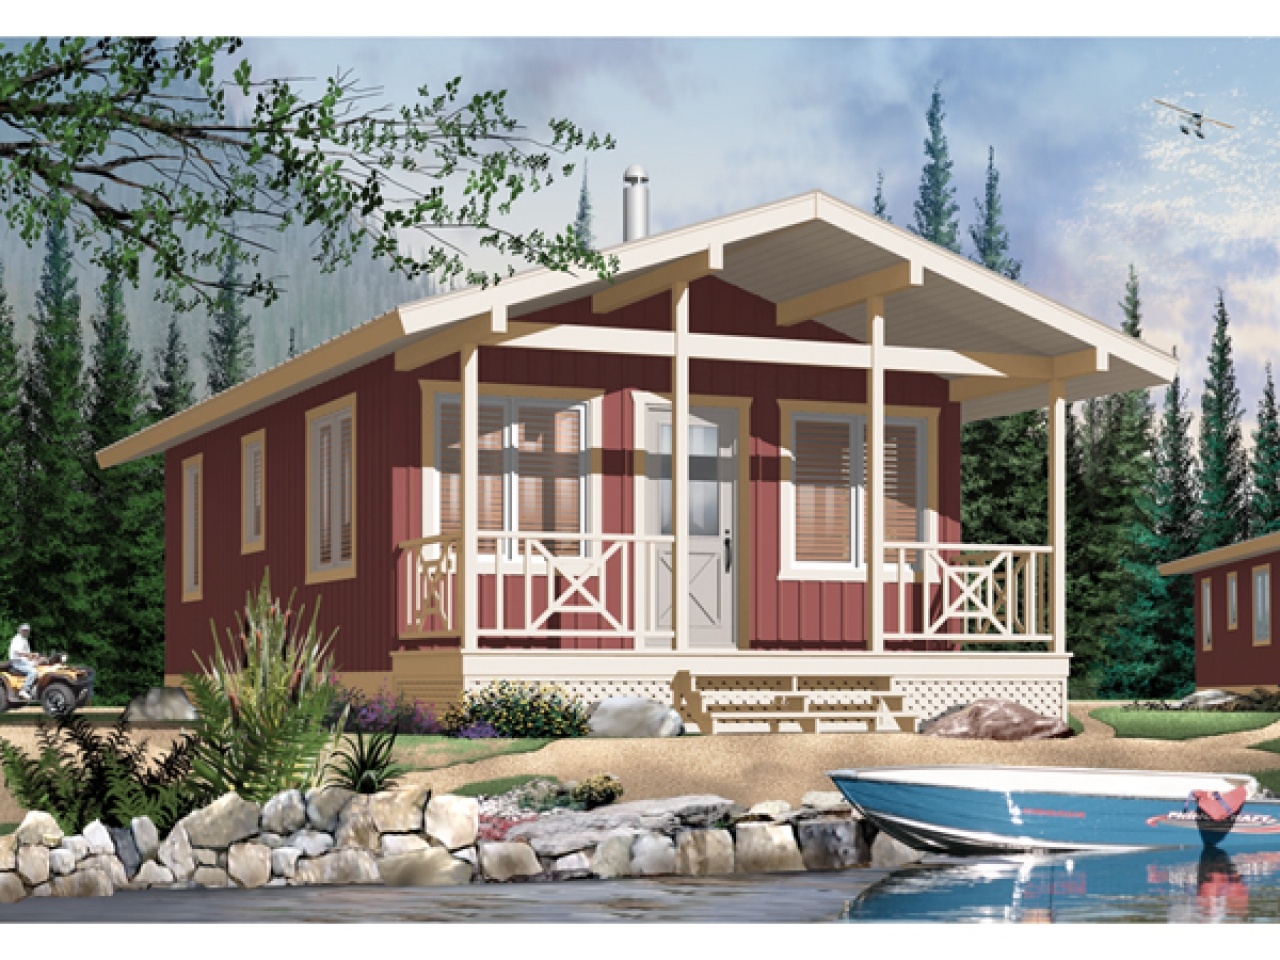 Small craftsman style house plans very small craftsman for Small craftsman homes